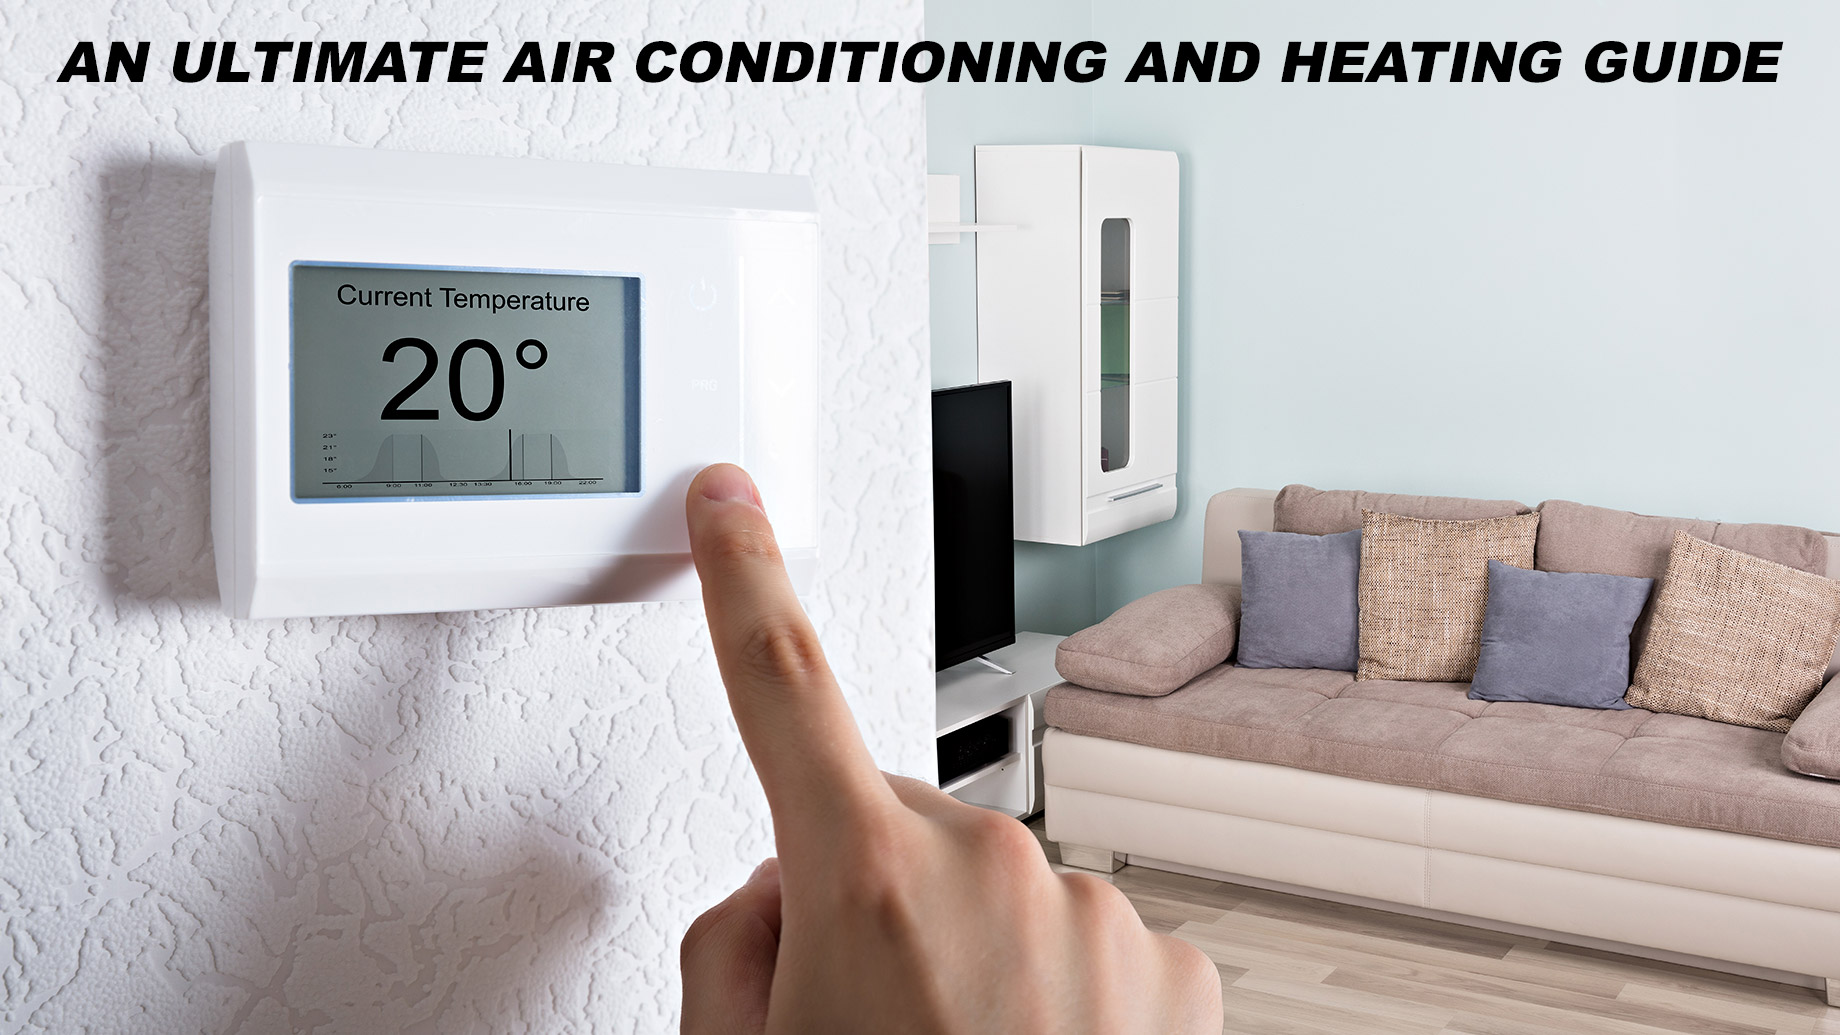 An Ultimate Air Conditioning and Heating Guide